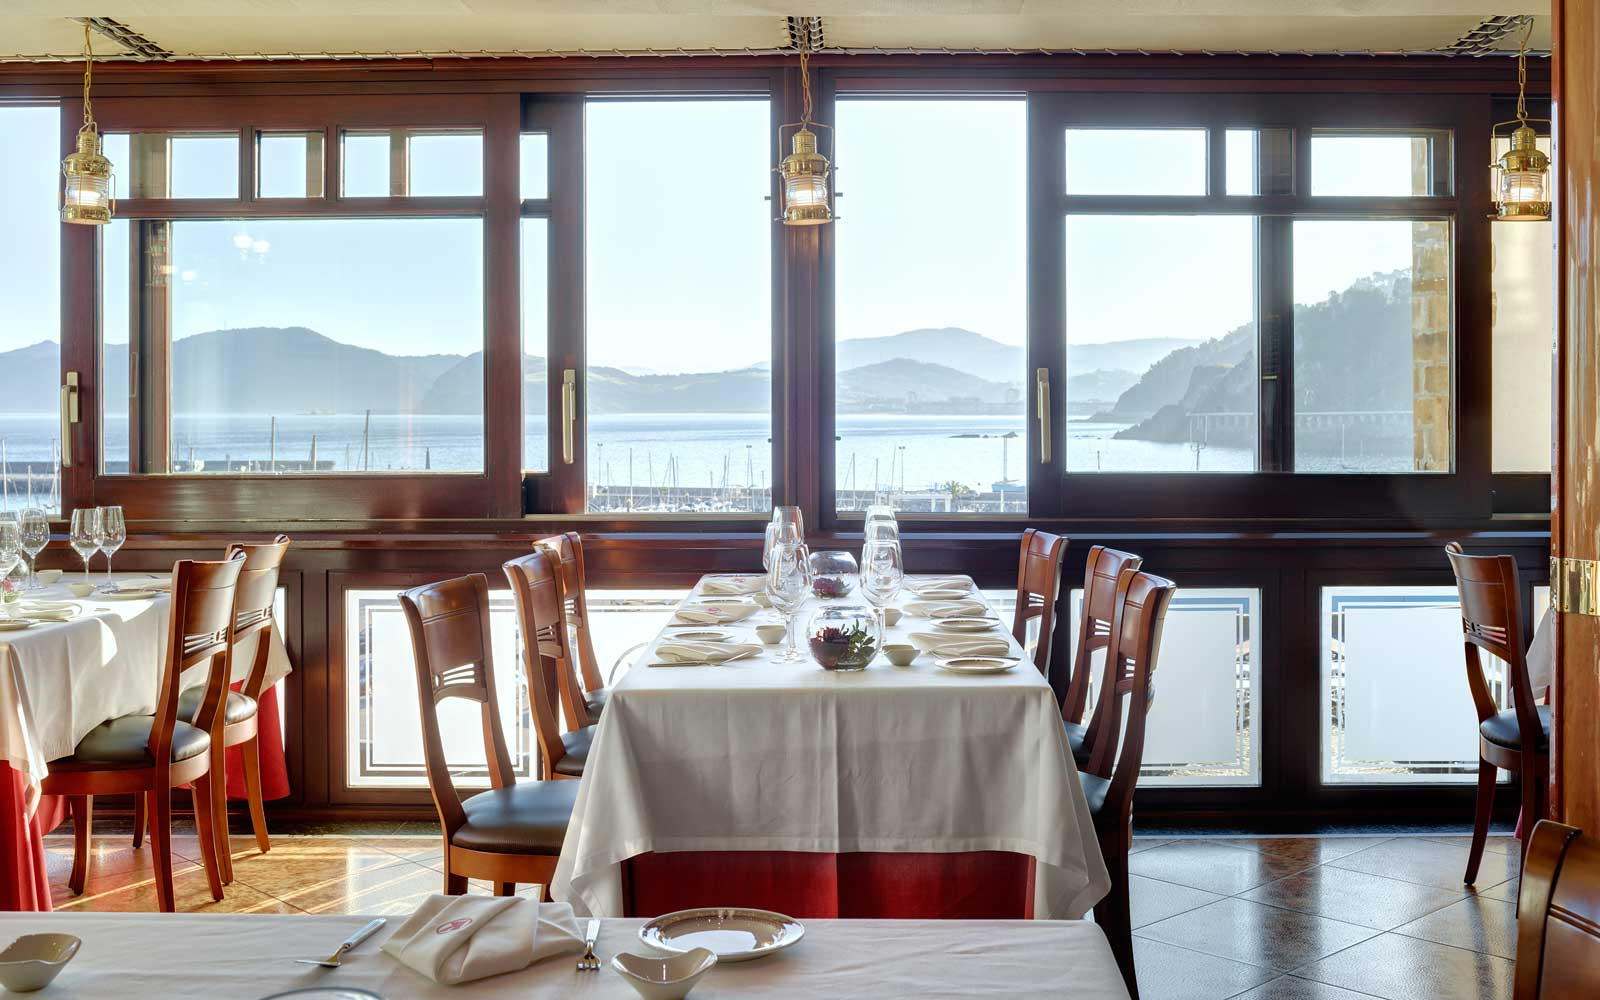 The dining room at Kaia-Kaipe restaurant in Spain